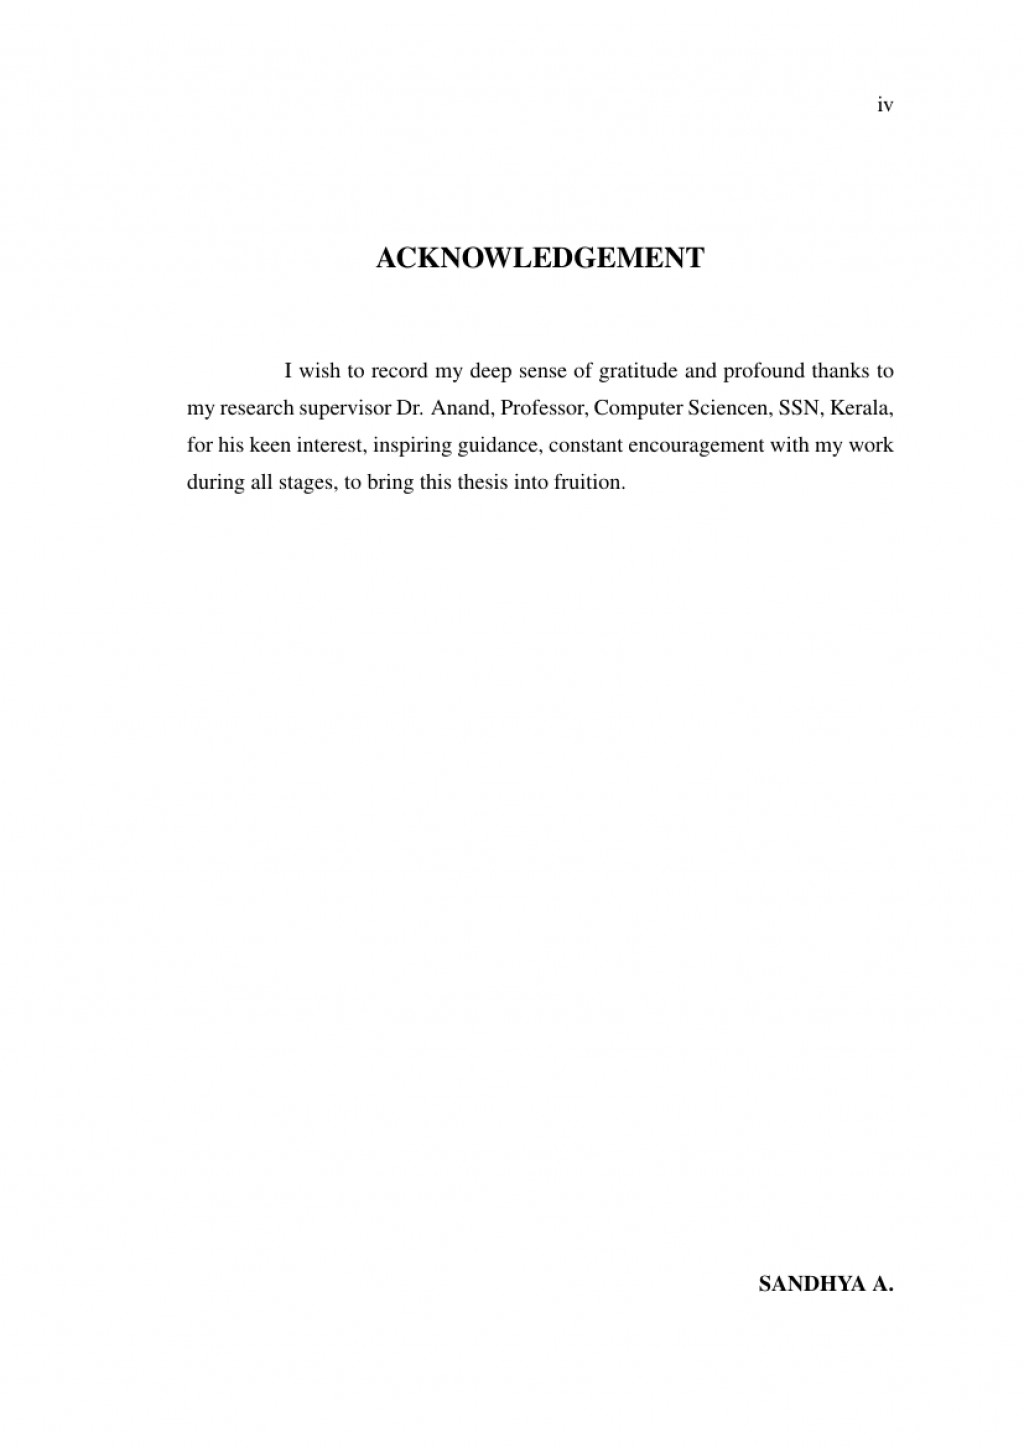 016 Research Paper Acknowledgement Example For Article Rare Pdf Large